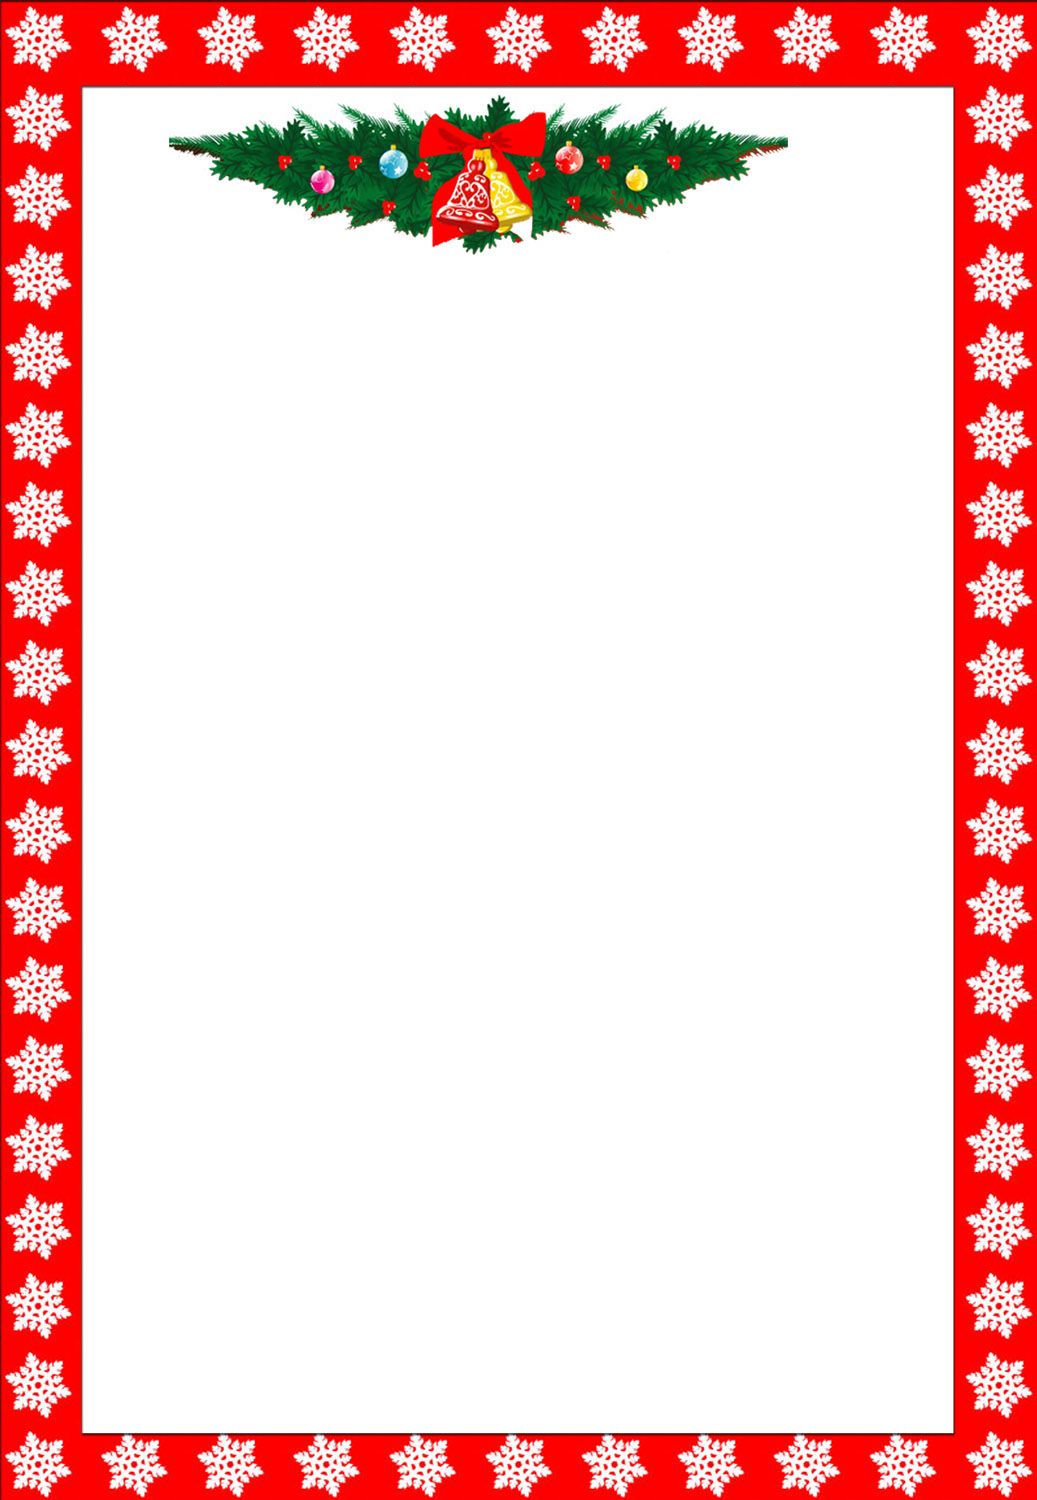 Pin Christmas Border Free Page Borders Spyfind On Pinterest